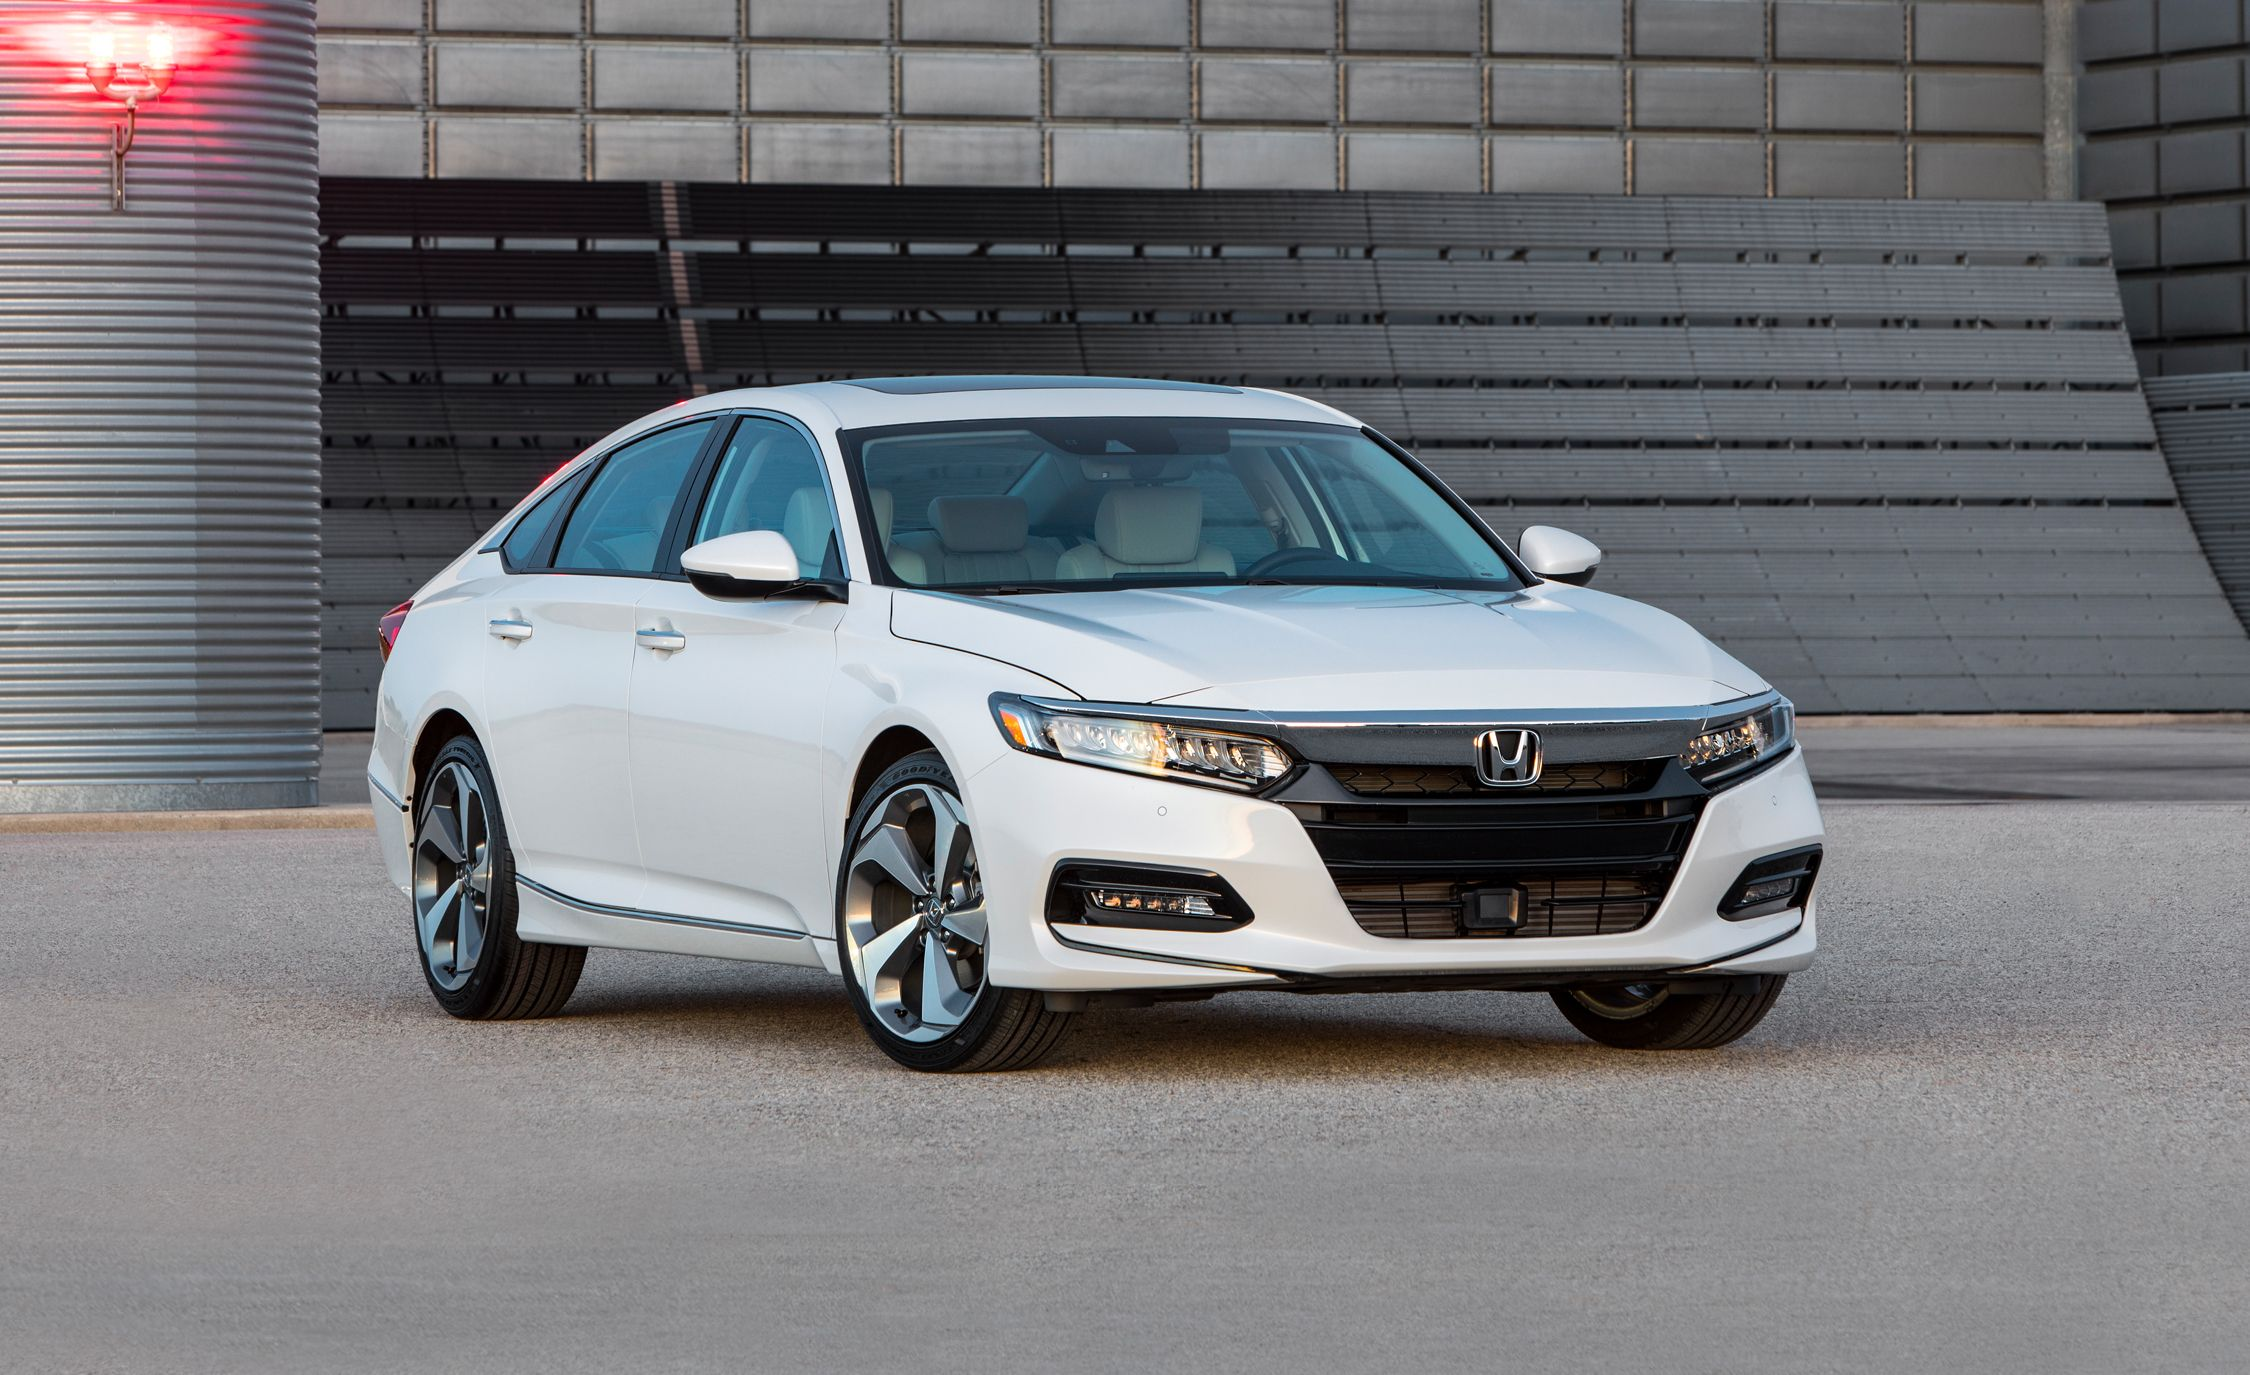 Honda Accord 2018 White >> 2018 Honda Accord Officially Revealed! | News | Car and Driver